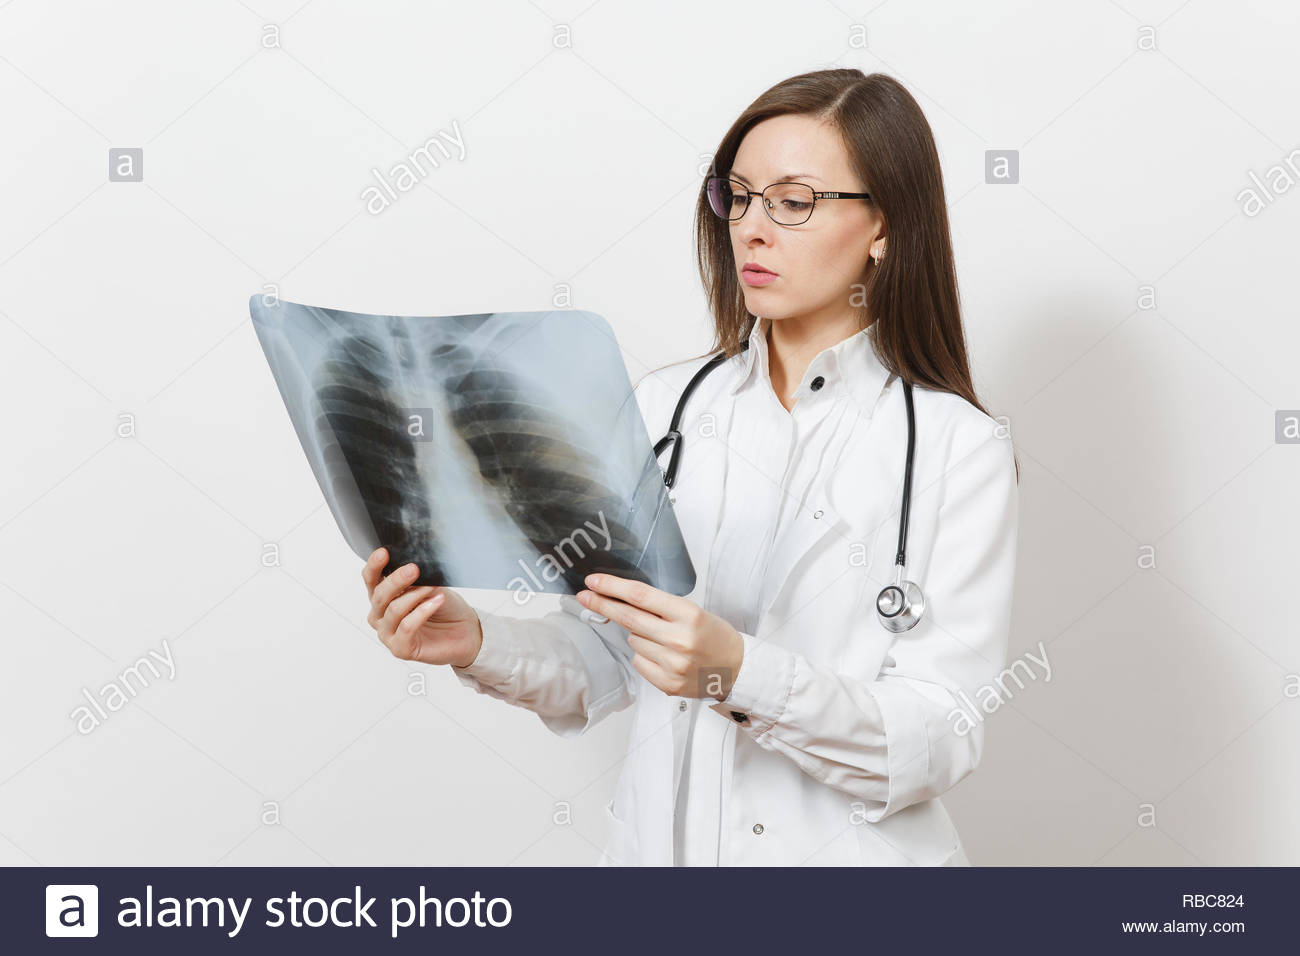 Beautiful doctor woman with X-ray of lungs, fluorography, roentgen isolated on white background. Female doctor in medical gown stethoscope glasses. Healthcare personnel, medicine concept. Pneumonia. - Stock Image